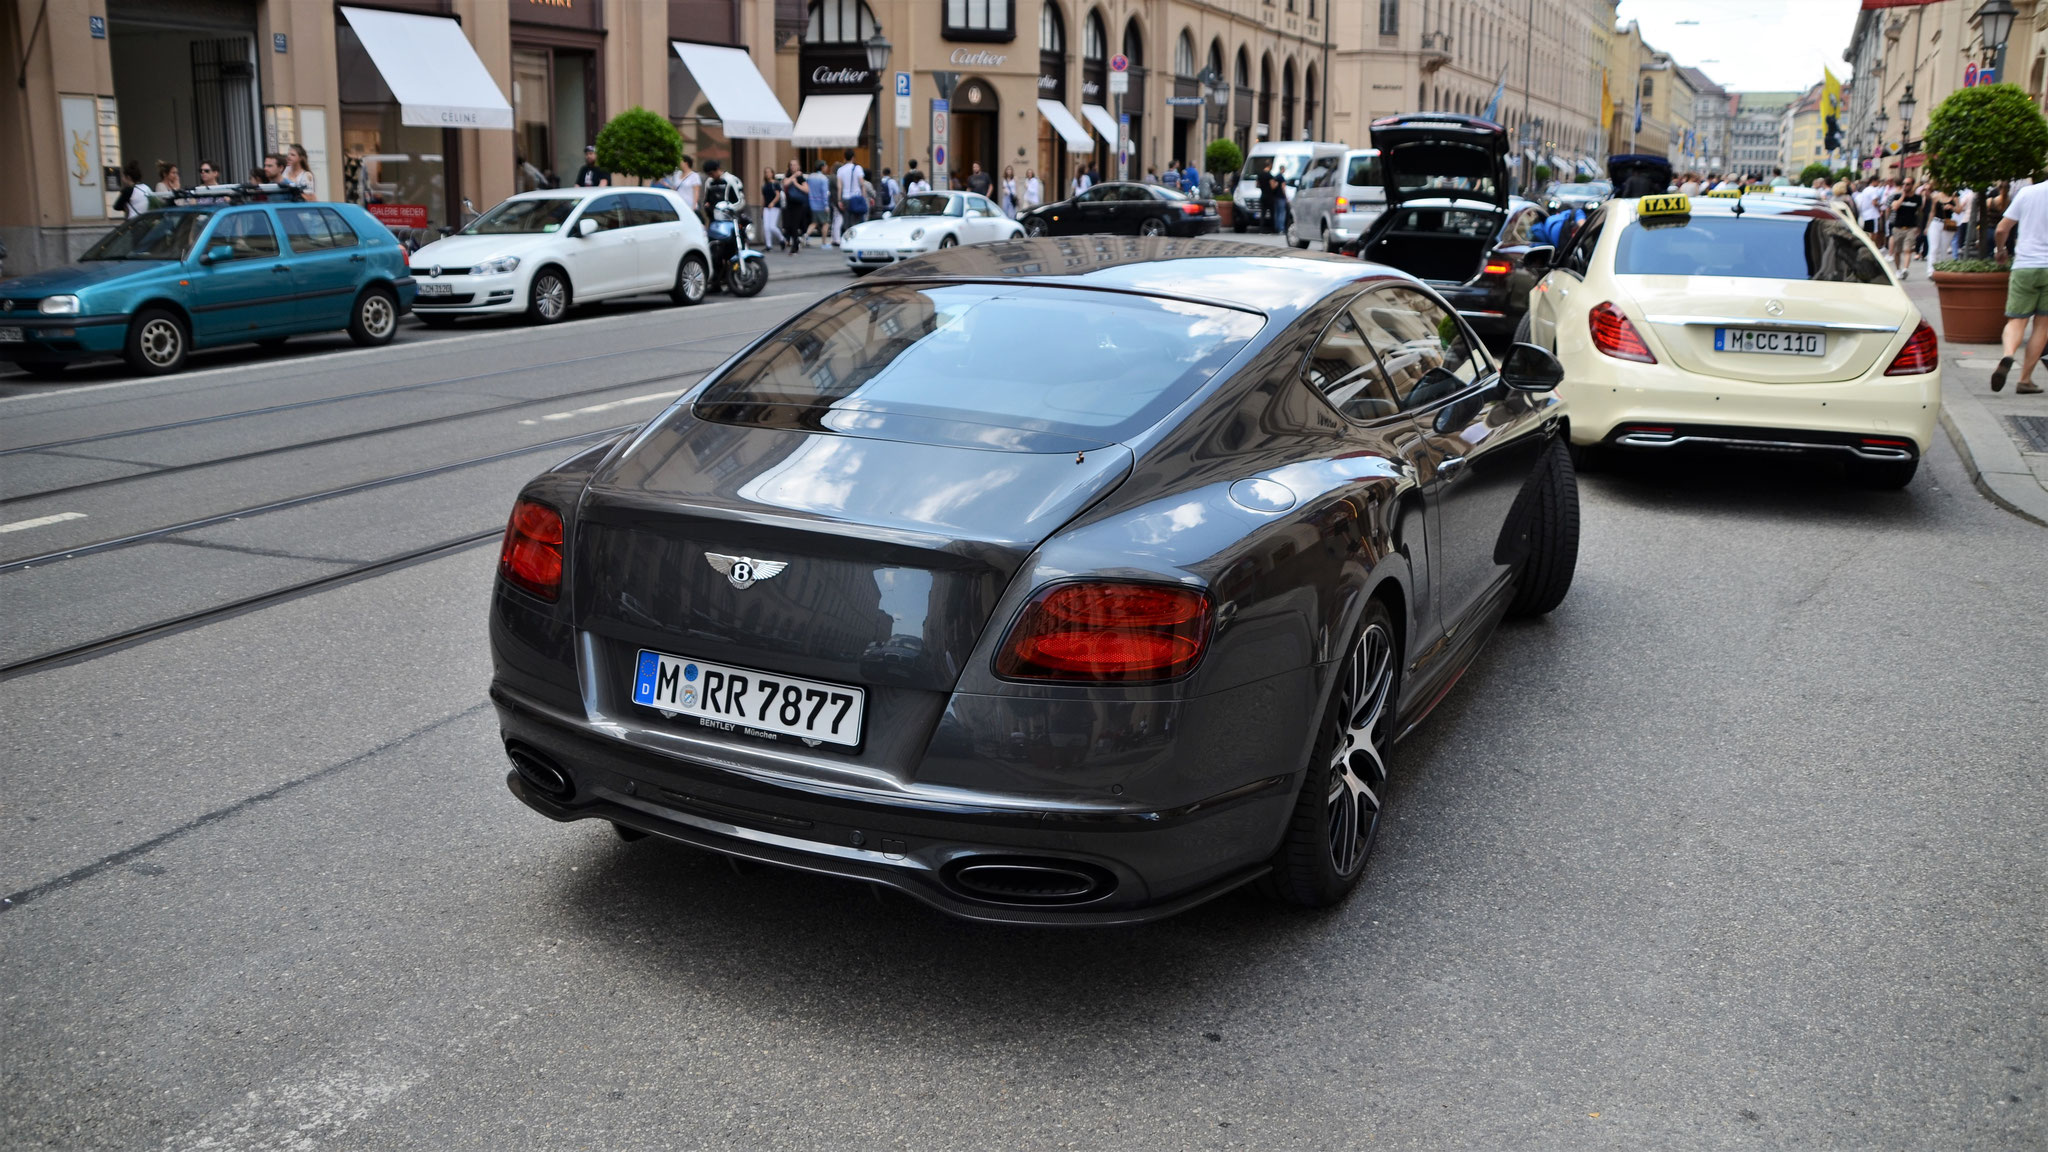 Bentley Continental GT Supersports - M-RR-7877